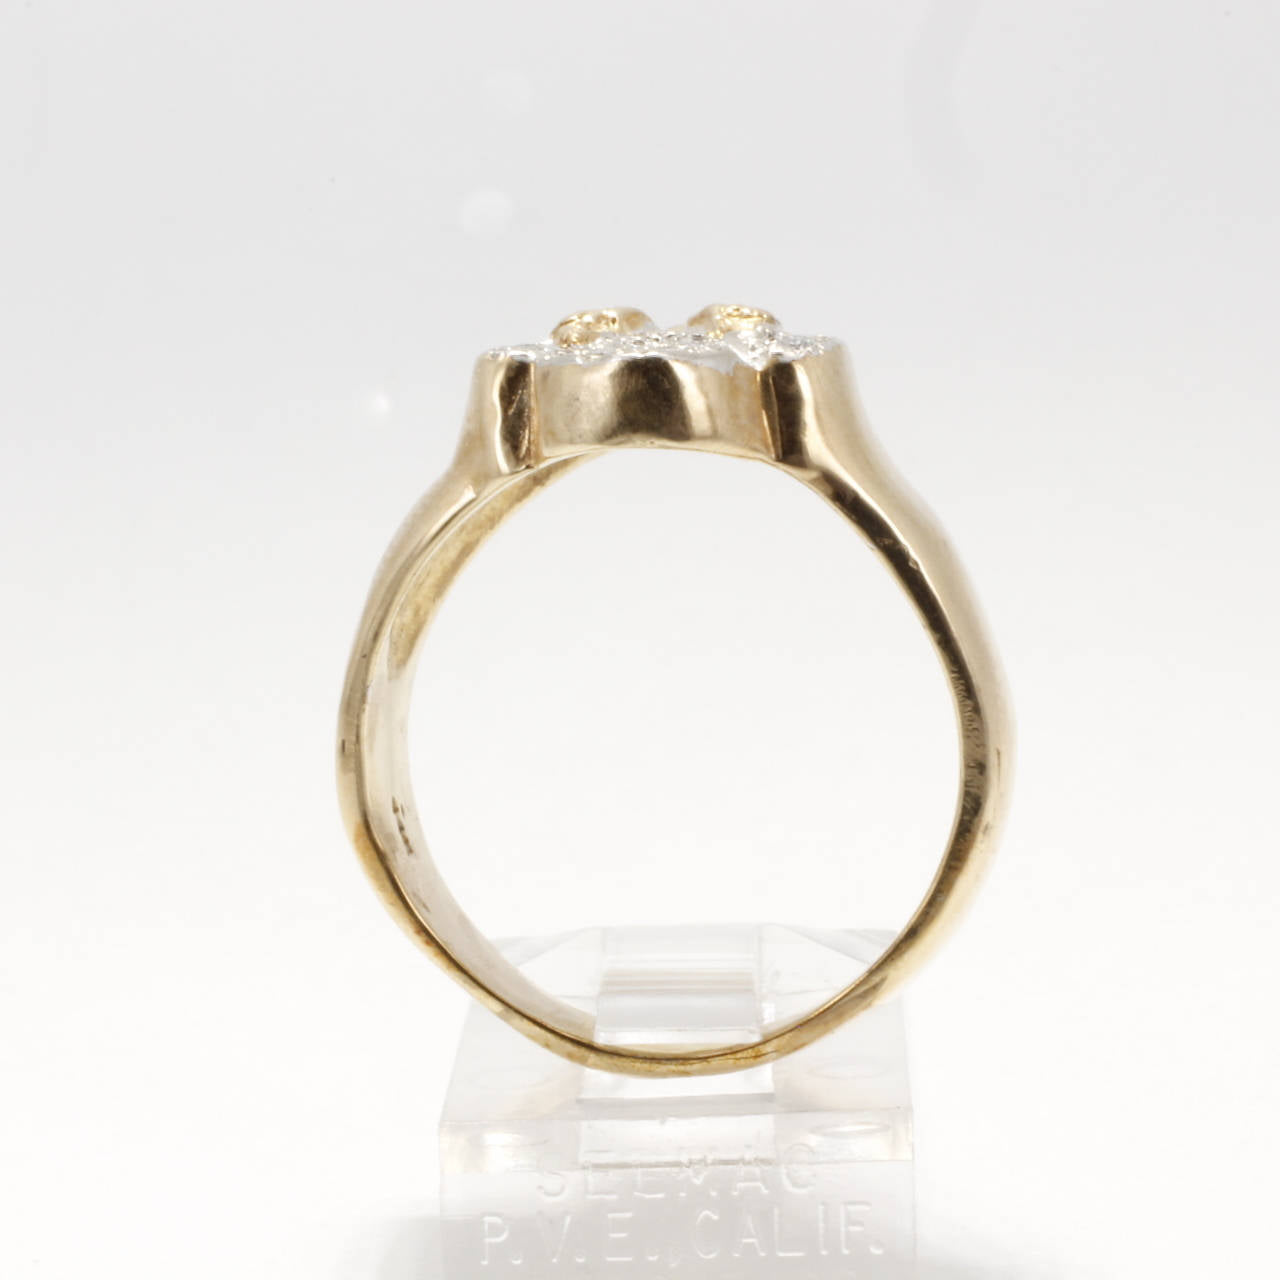 Ladies 14kt gold Diamond Cotton Boll Ring, Cotton farming gift for ...